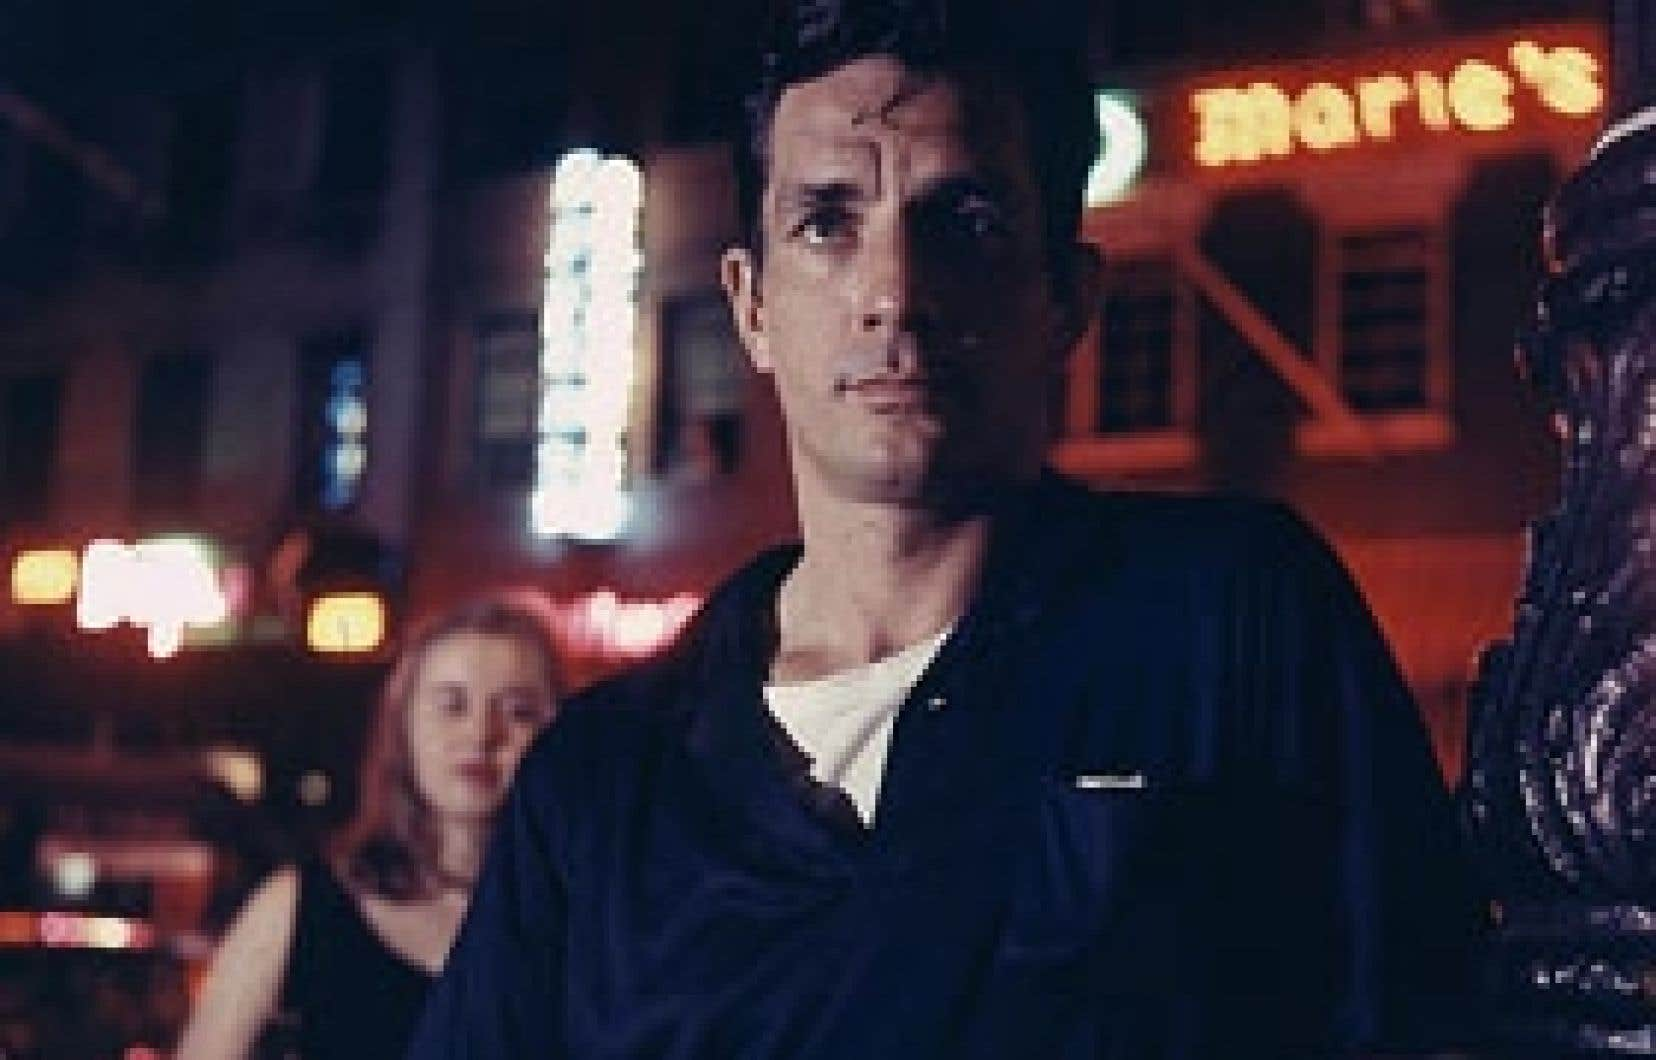 Jack Kerouac et sa compagne, Joyce Johnson, à Greewich Village, en 1957. Photo: Jerome Yulsman, Globe Photos